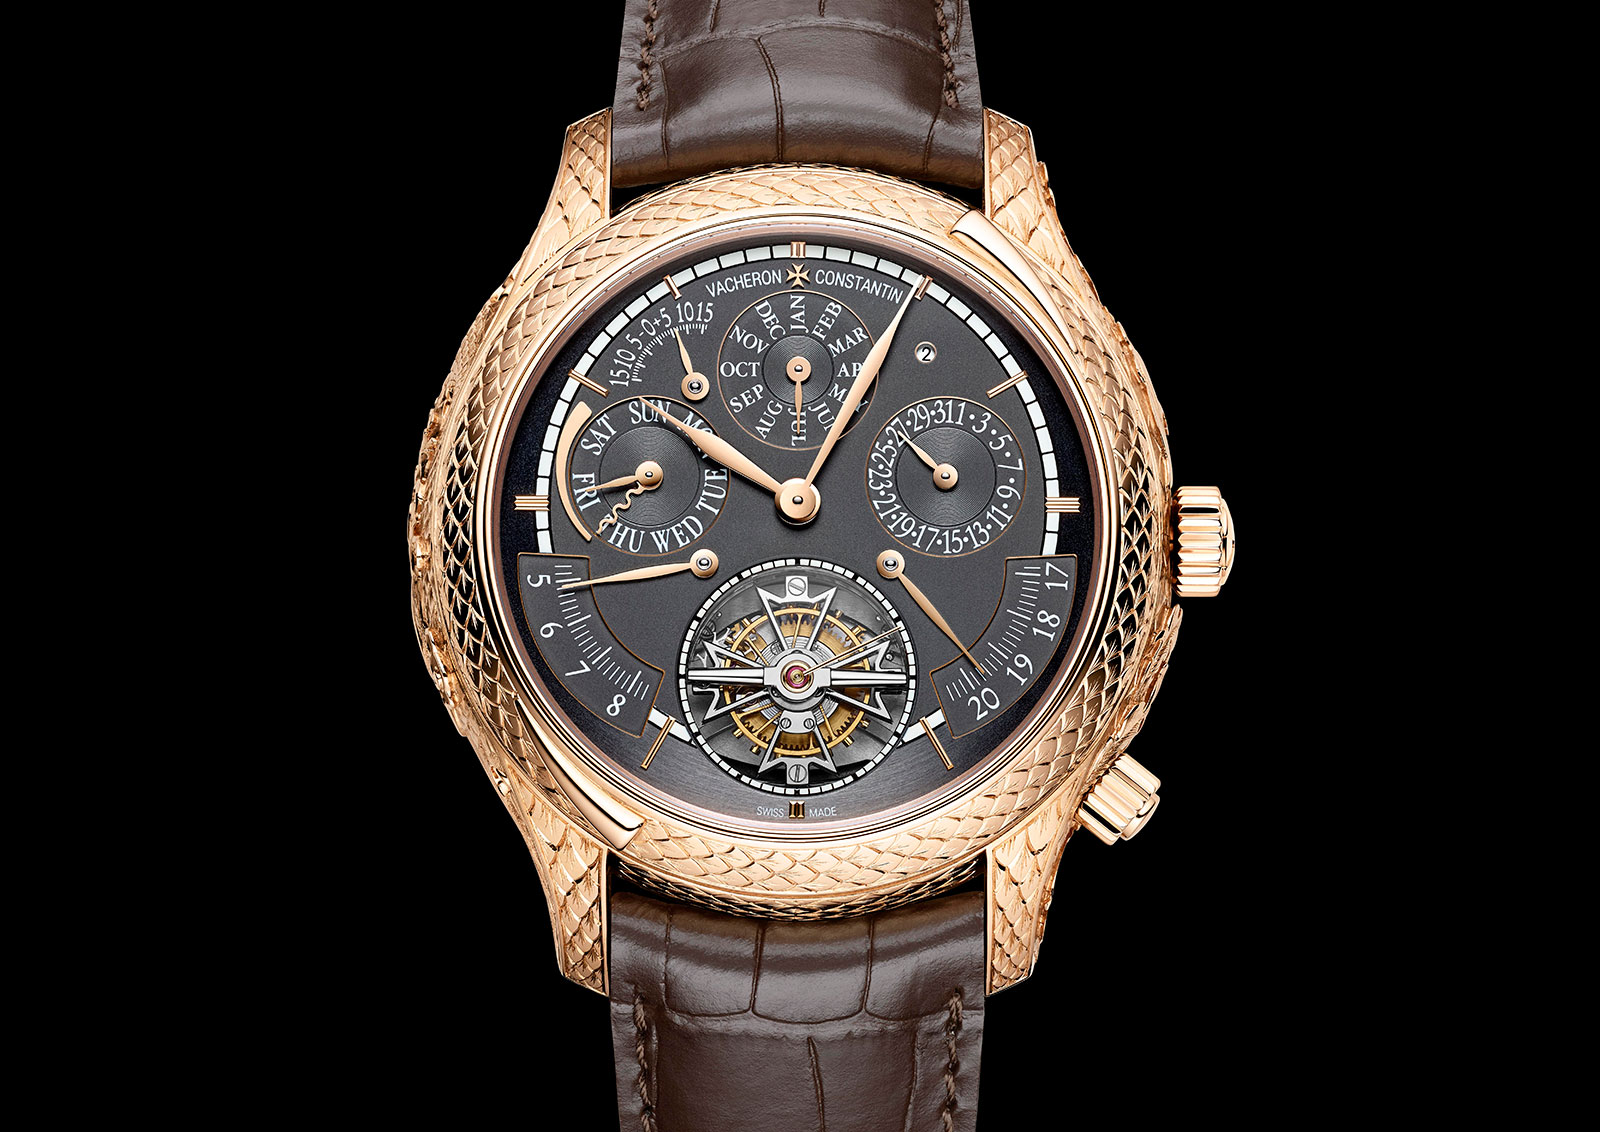 Vacheron Constantin Cabinotiers Grand Complication Phoenix 5